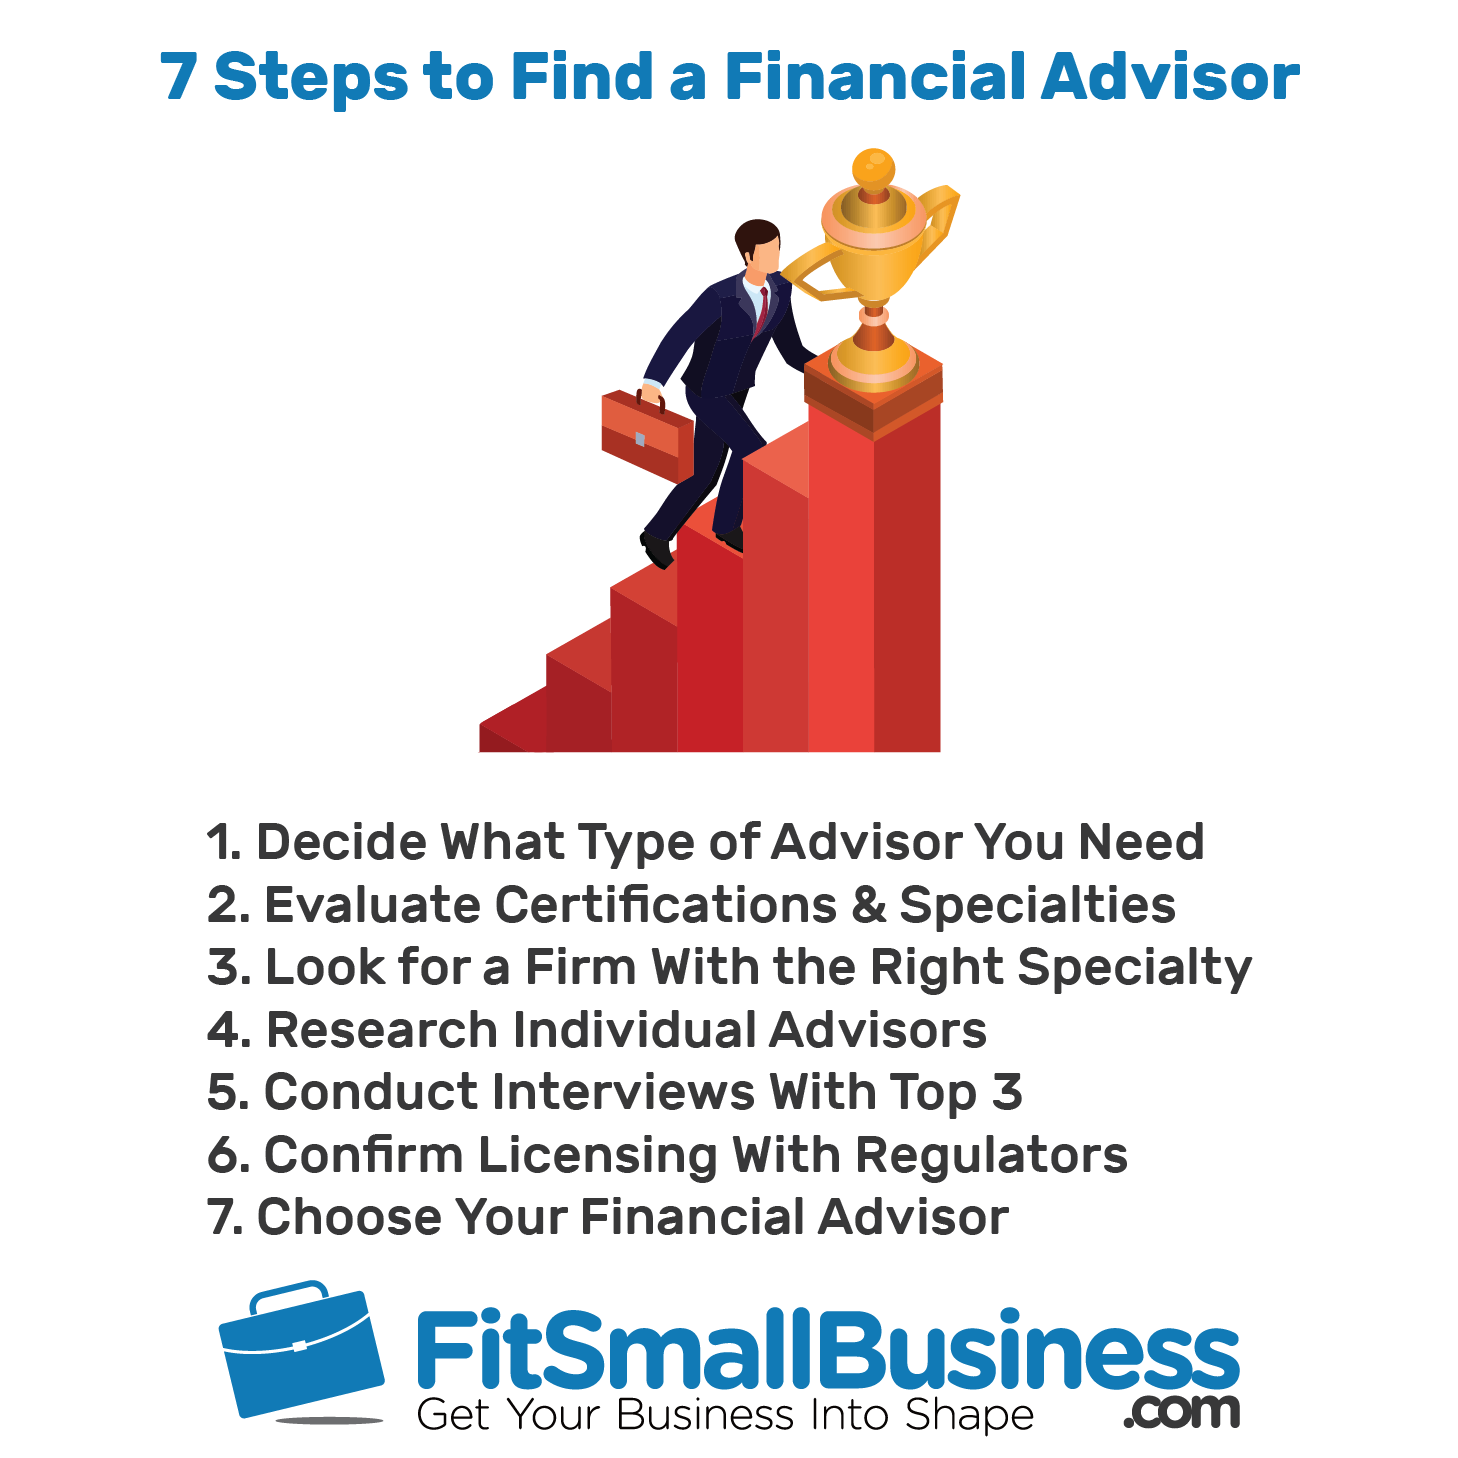 7 Steps to Find a Financial Advisor - financial advisor